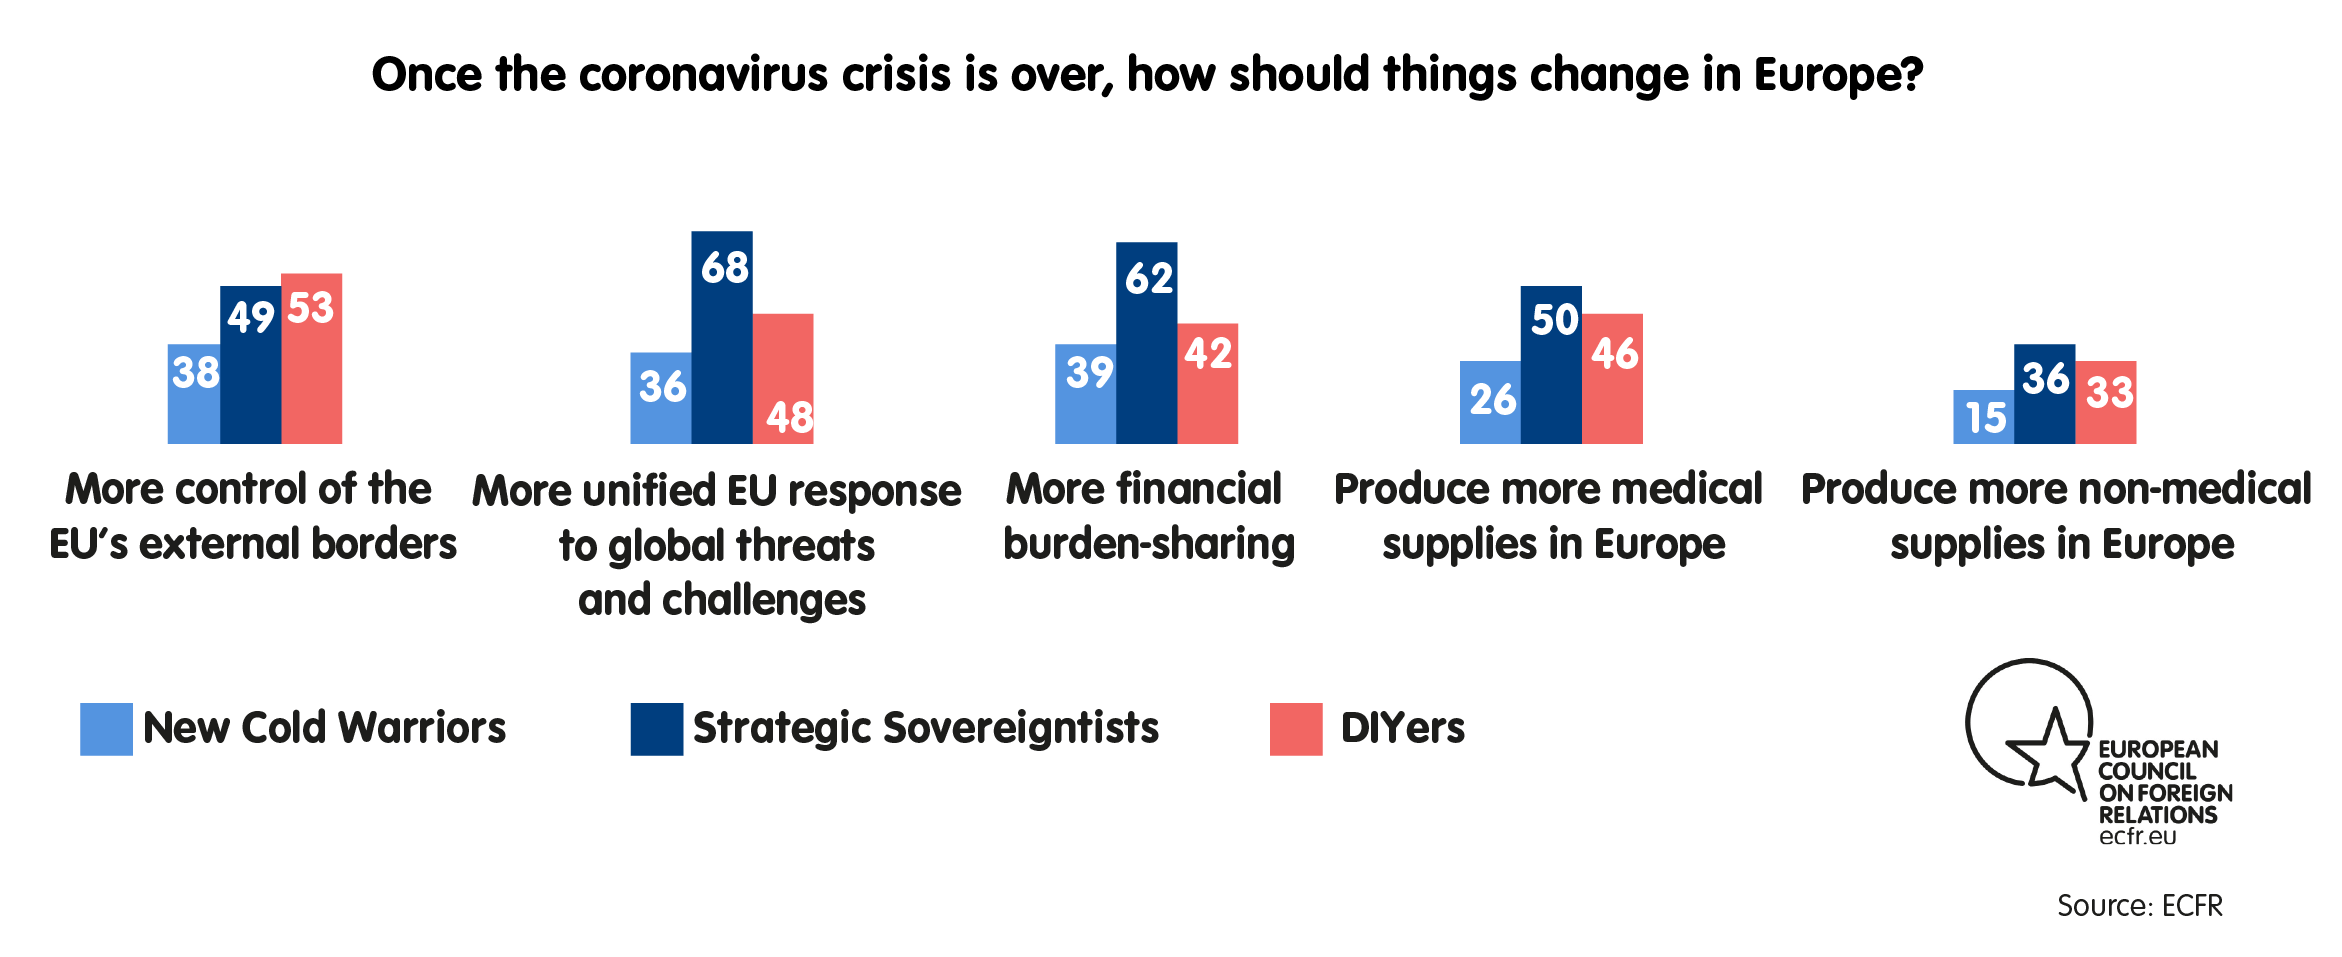 Once the coronavirus is over, how should things change in Europe?